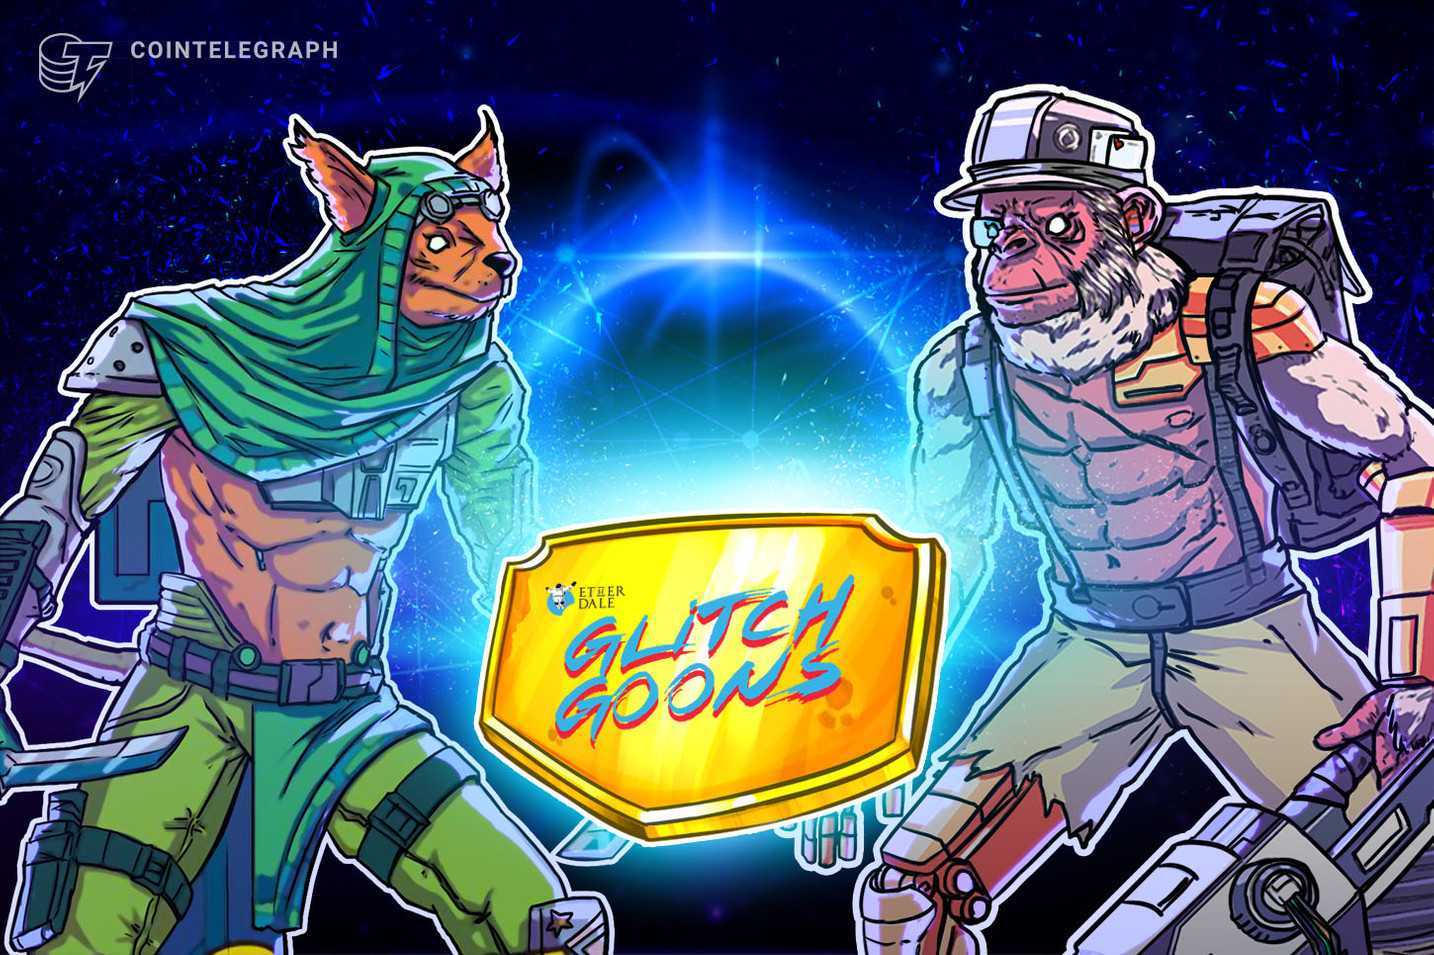 New Cryptopunk Game: Players Fight in Futuristic Post-Apocalyptic World to Get Real Prizes